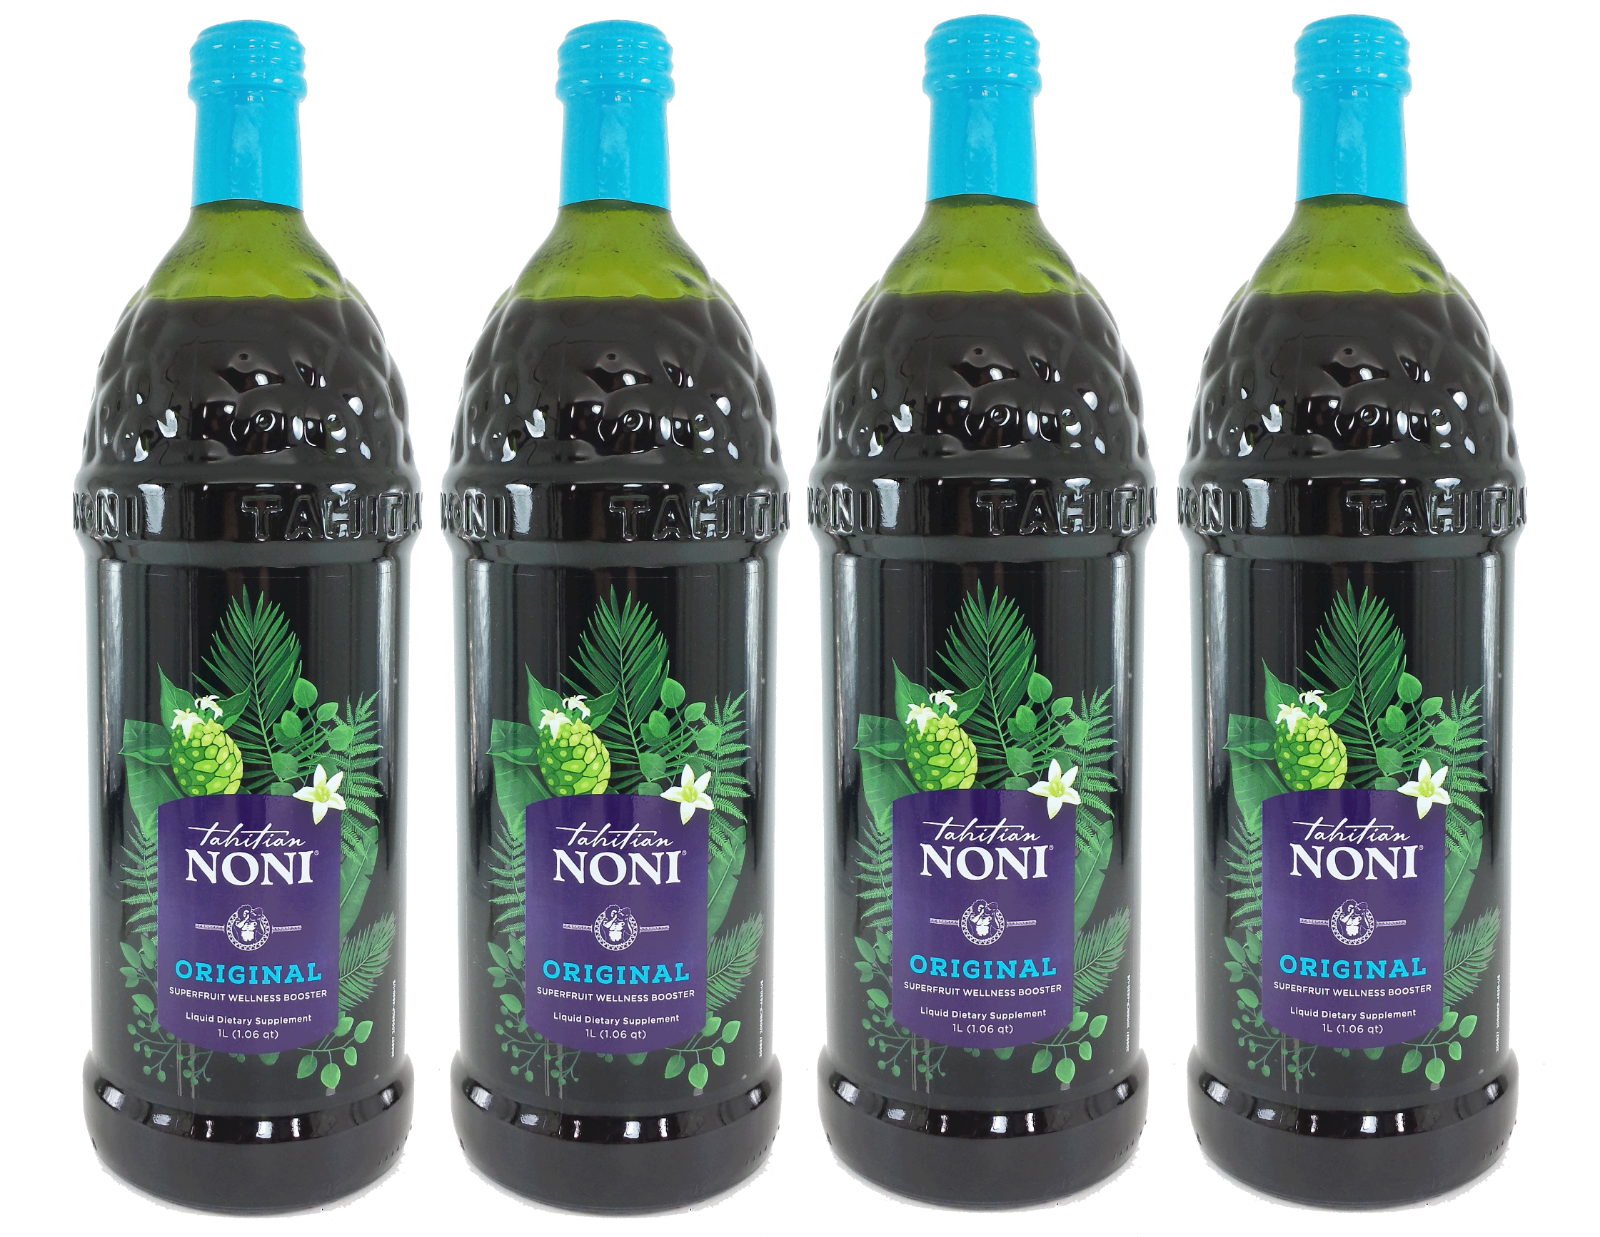 Tahitian Noni Juice by Morinda Inc. (4 bottle case) *NEW LOOK!* 4